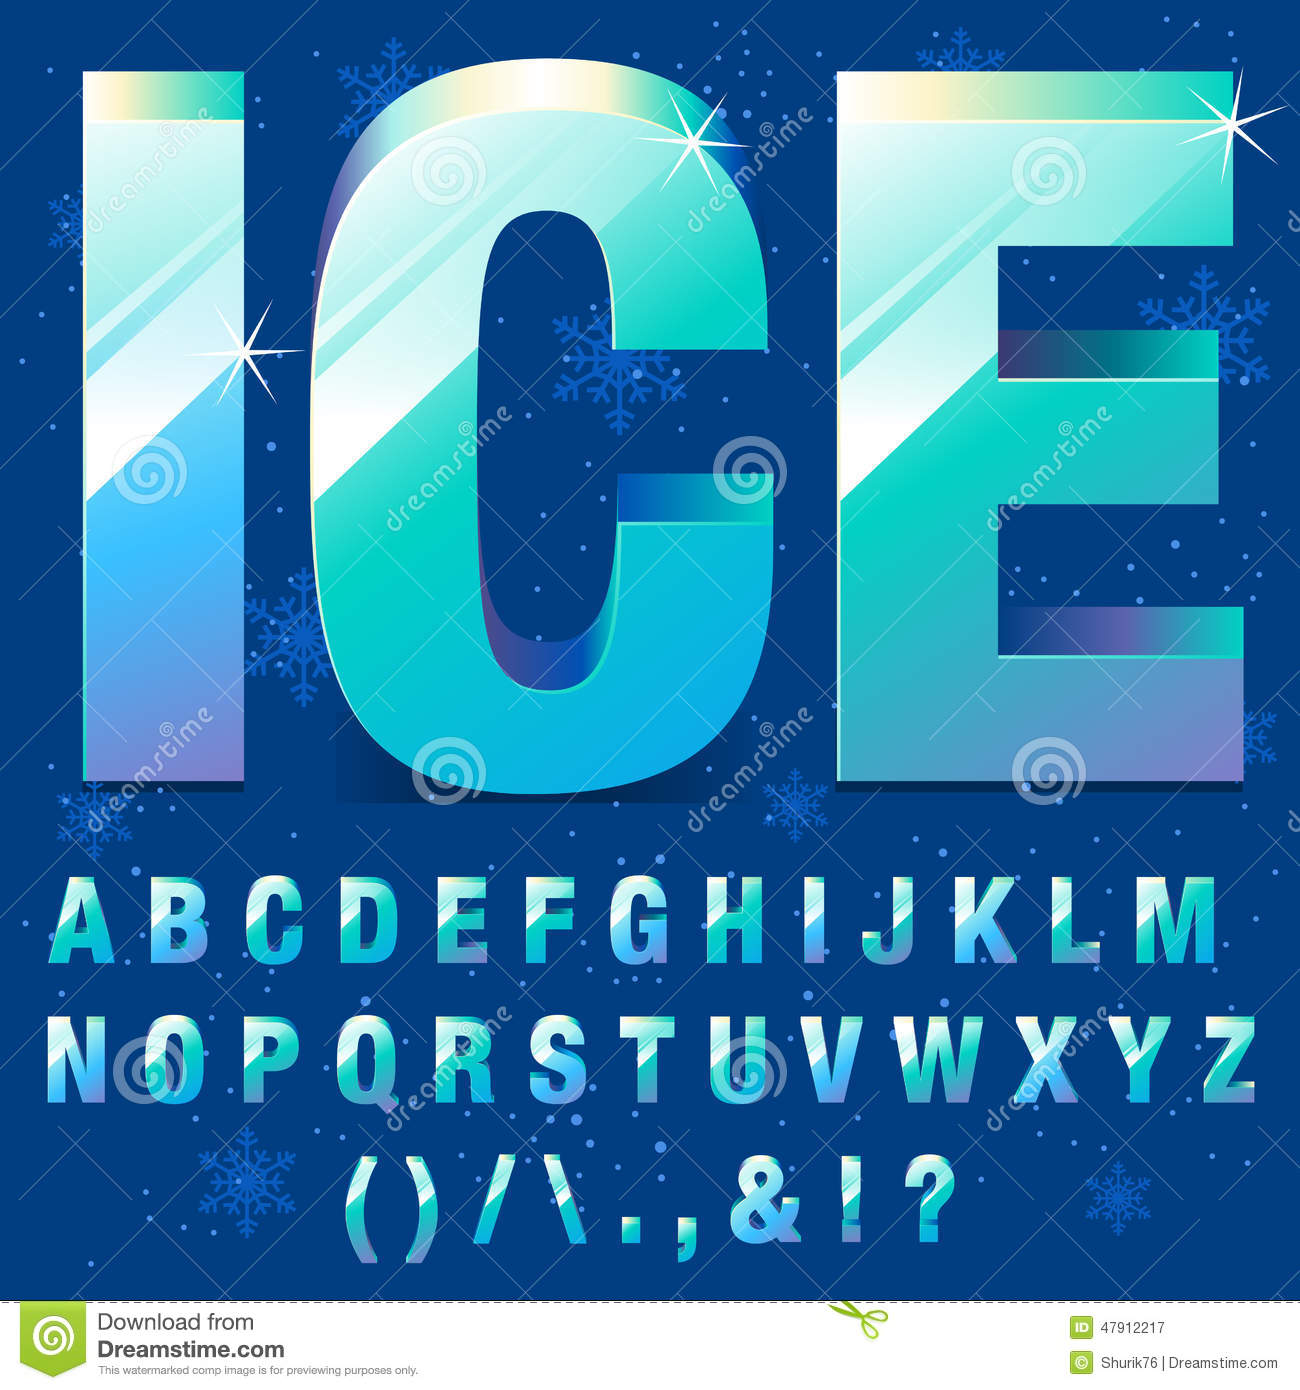 ice-letters-hand-drawn-alphabet-47912217 Different Type Of Letters Template on different letter ideas, different letter shapes, different letter design, different signatures, different letter patterns, different calendars, different letter graphics, different letter fonts, different letter text, different letter themes, different letter scripts, different letter drawings, different letter styles,